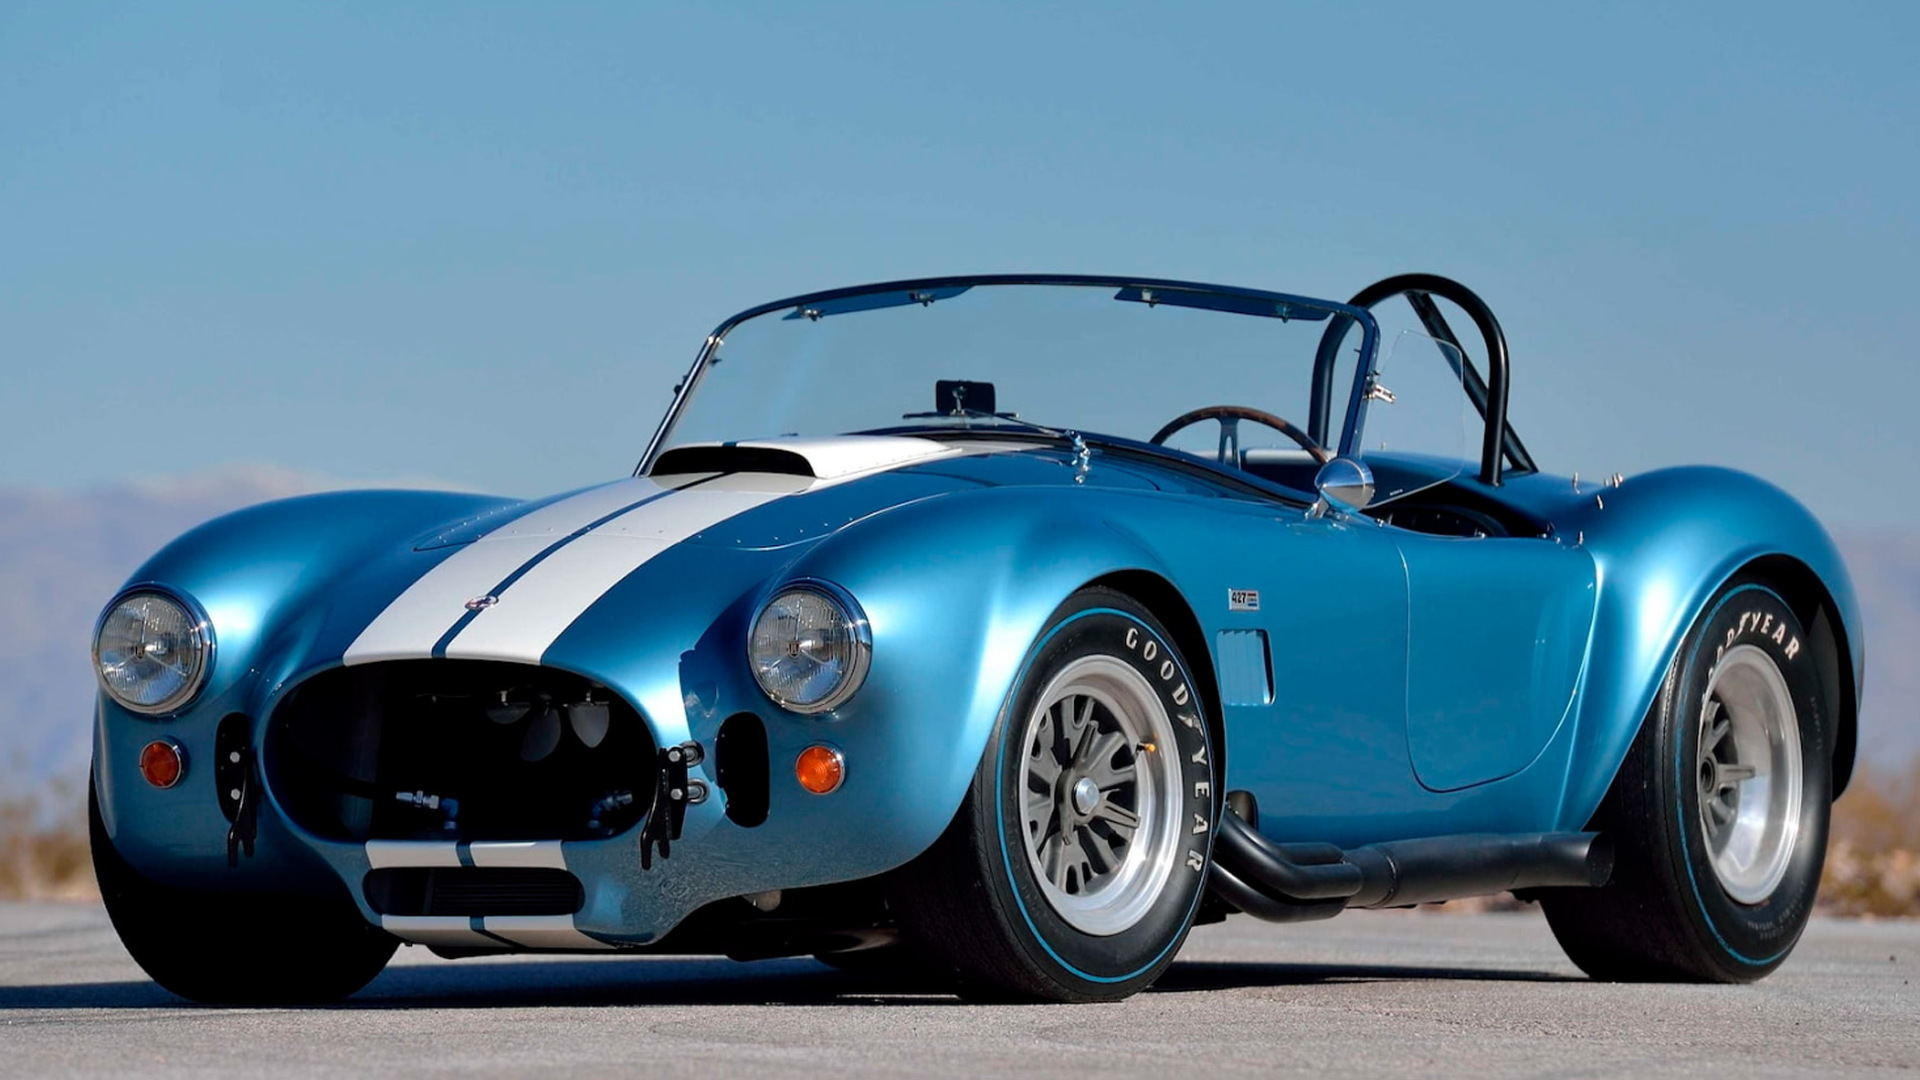 1967 Shelby Cobra 427 S/C Roadster